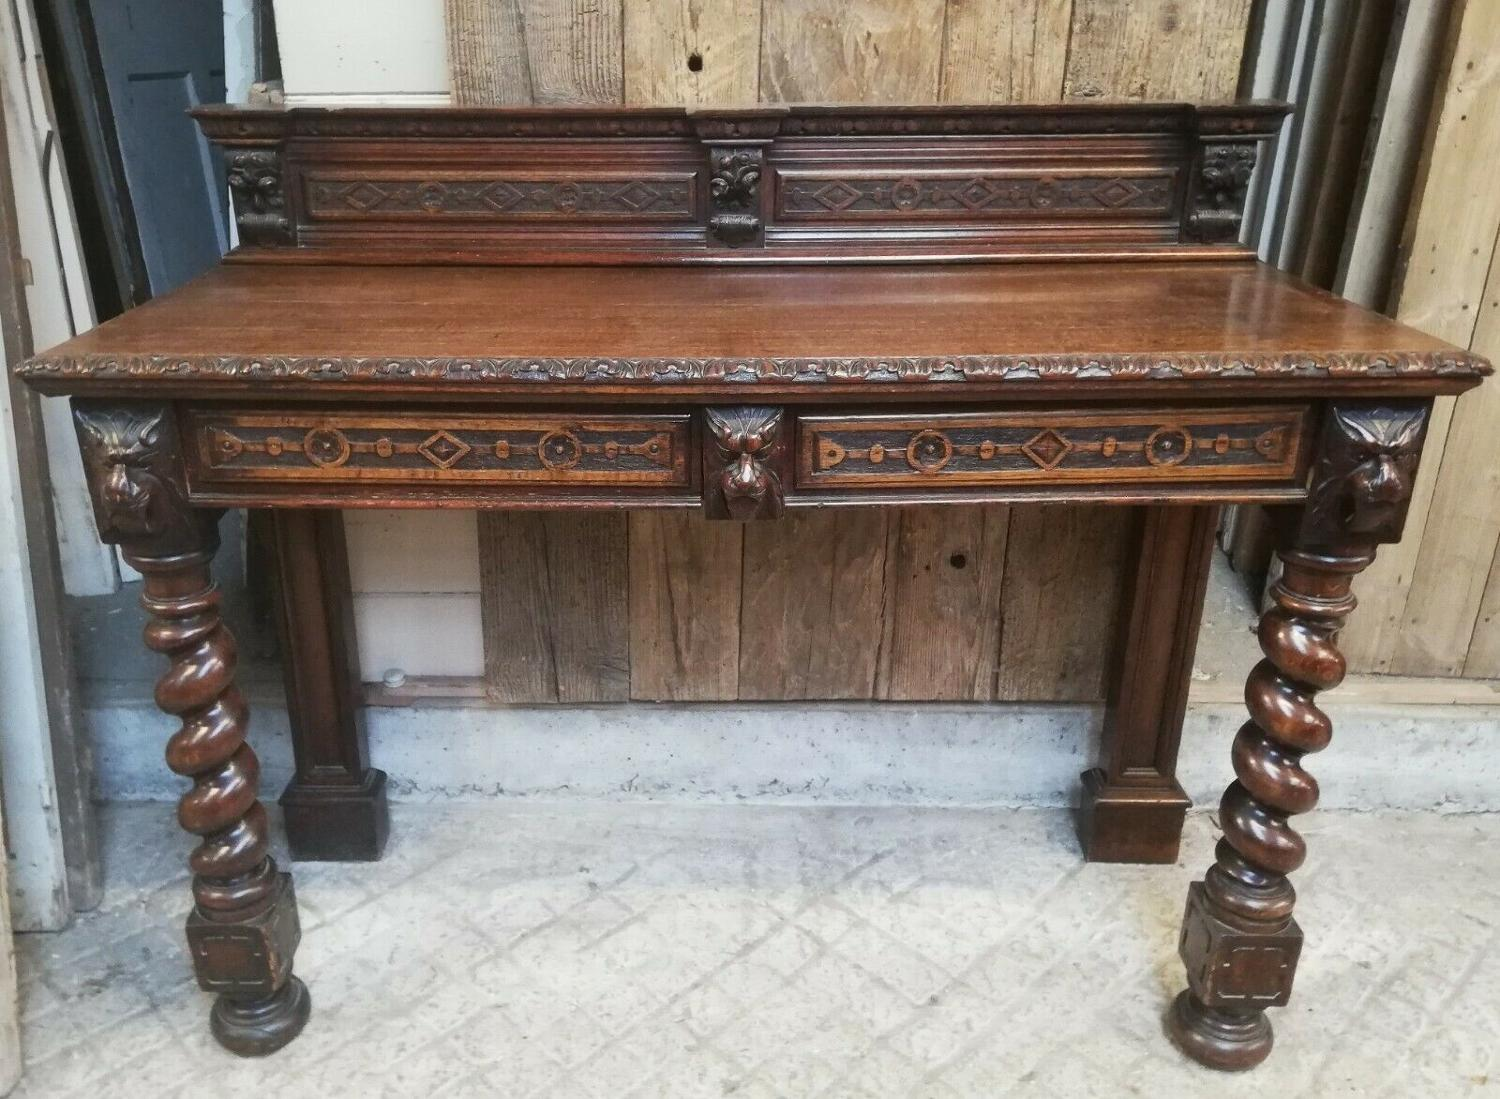 M1273 A CARVED VICTORIAN OAK SIDEBOARD BY EDWARDS AND ROBERTS